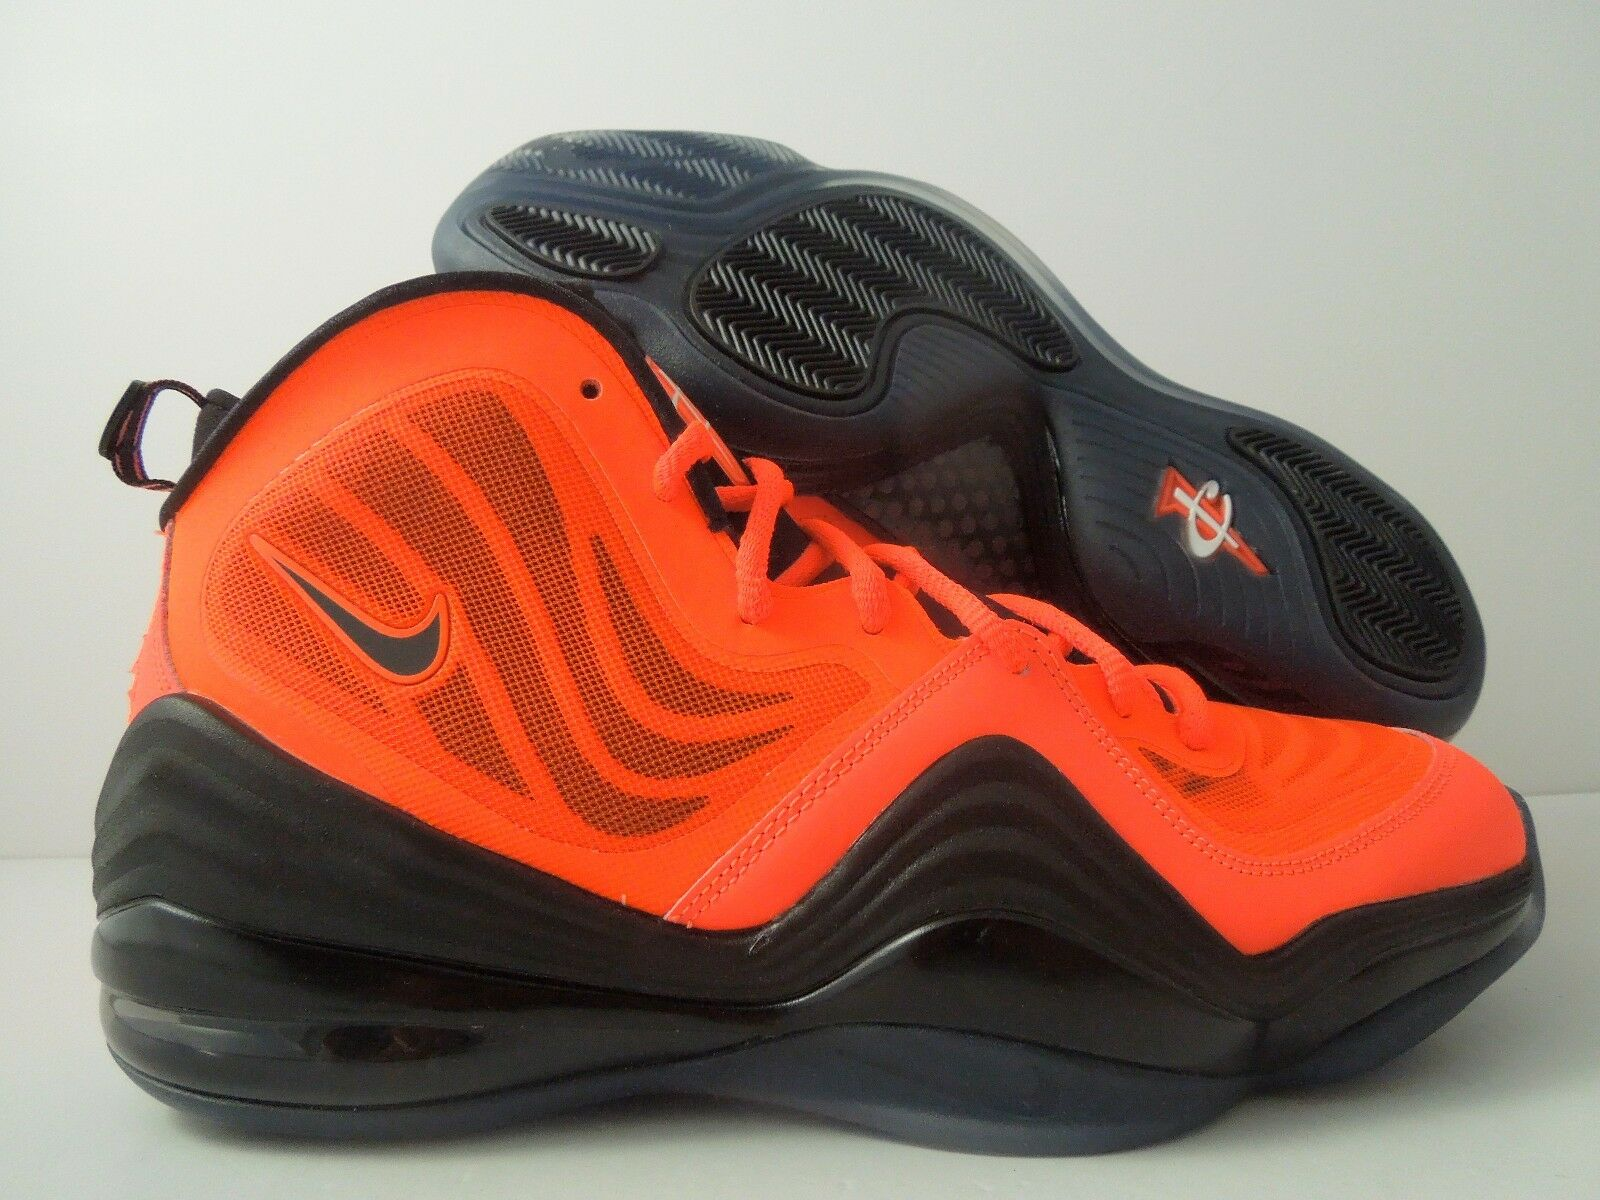 NIKE AIR PENNY V TOTAL CRIMSON ORANGE-BLACK SZ 12 [537331-800]